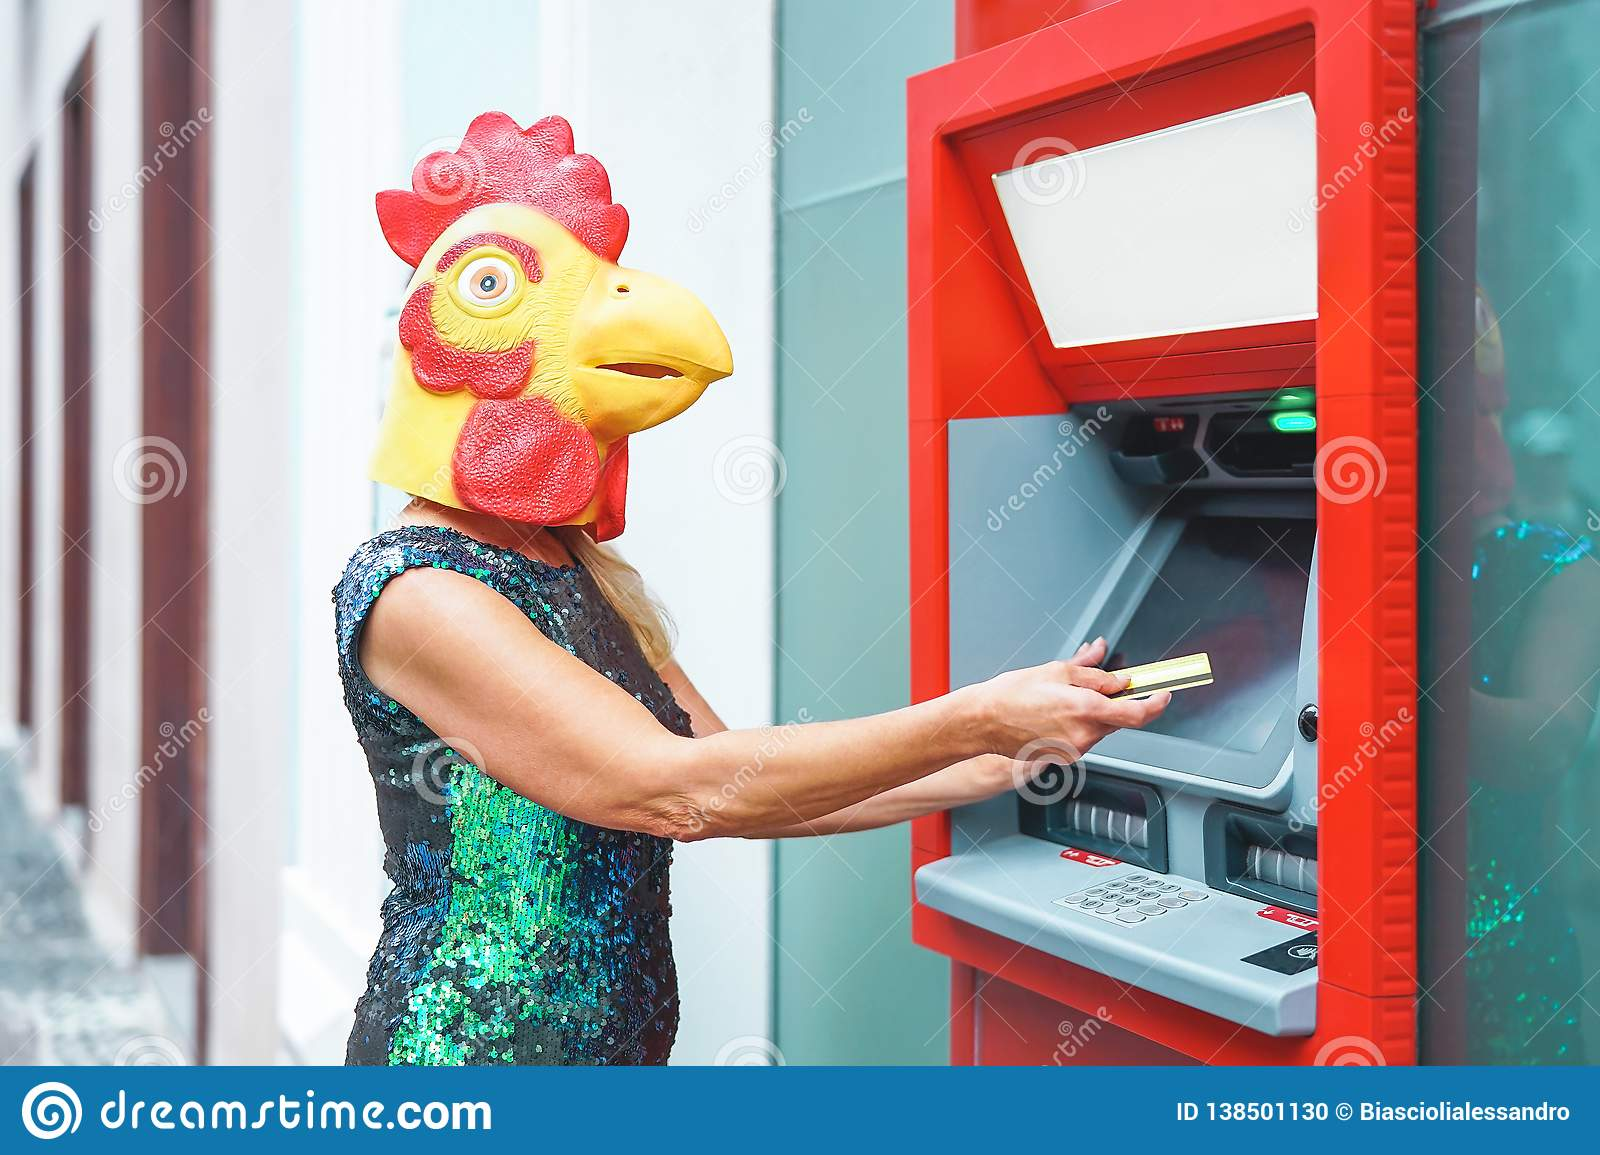 Mature woman wearing mask withdraw money from bank cash machine with debit card - Surreal image of half human and animal